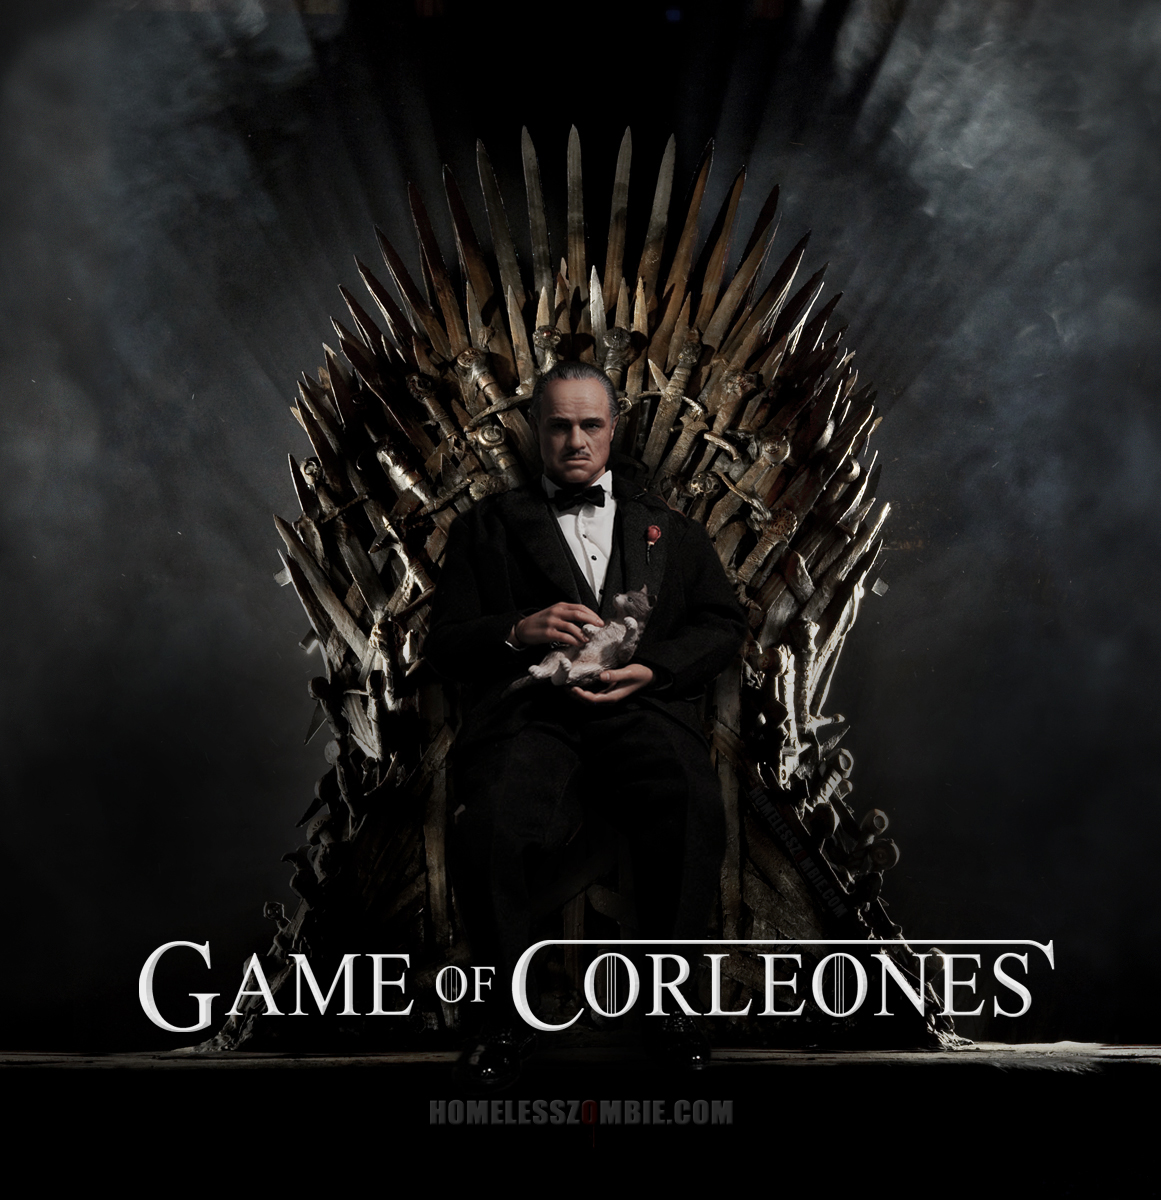 Vito Corleone sits on the Iron Throne. Game of Thrones / The Godfather ...